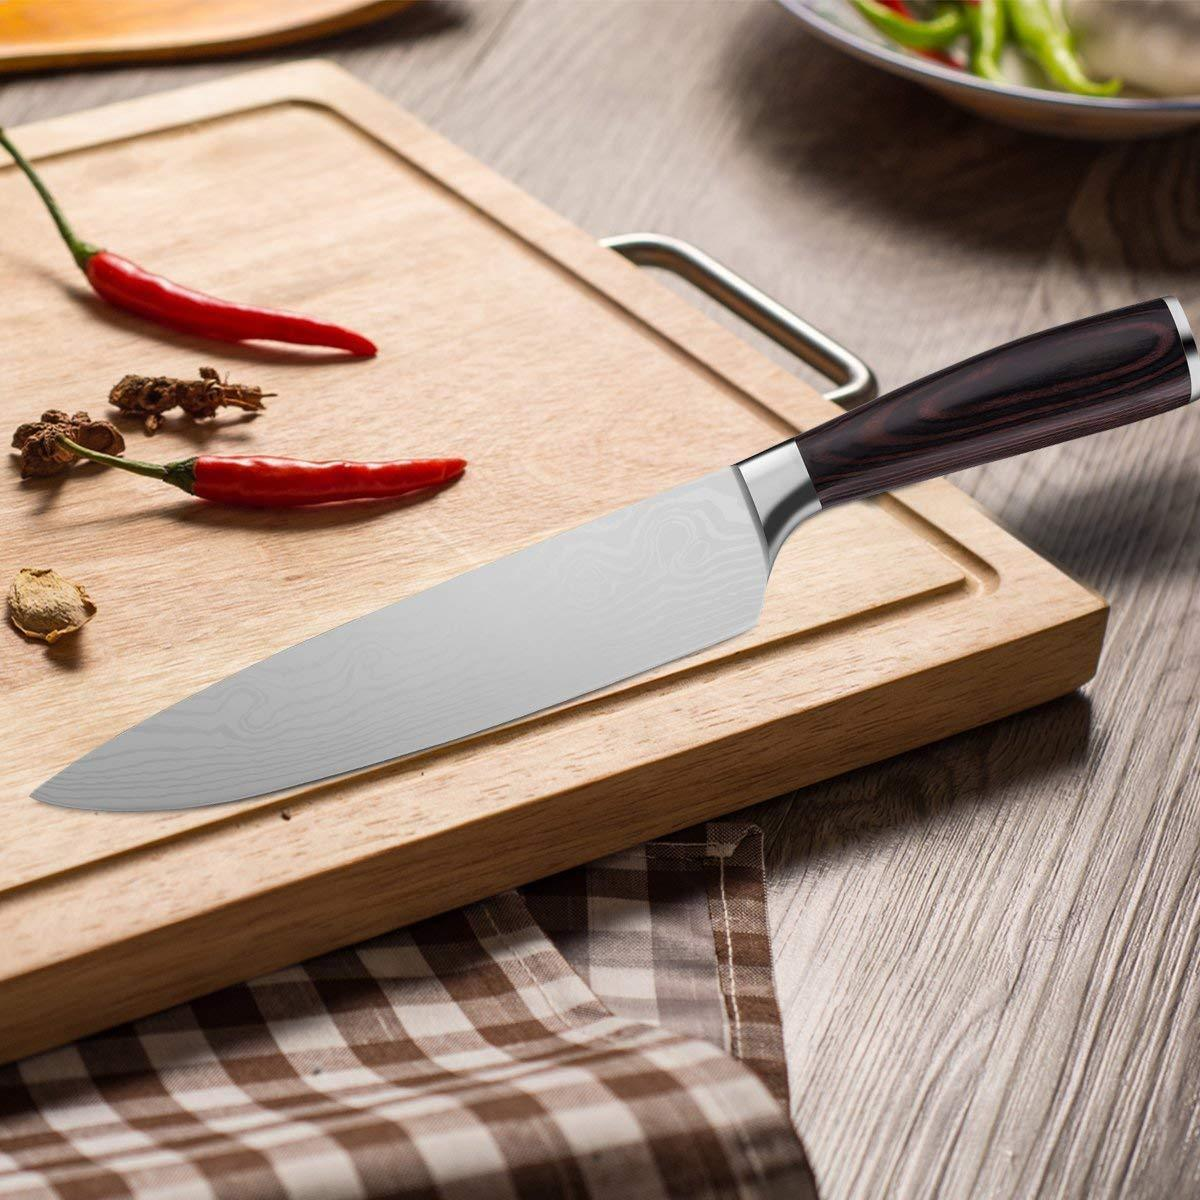 Ordekcity 8 Inch Chef's Knife High Carbon Stainless Steel  w/ GIft Box  image 6